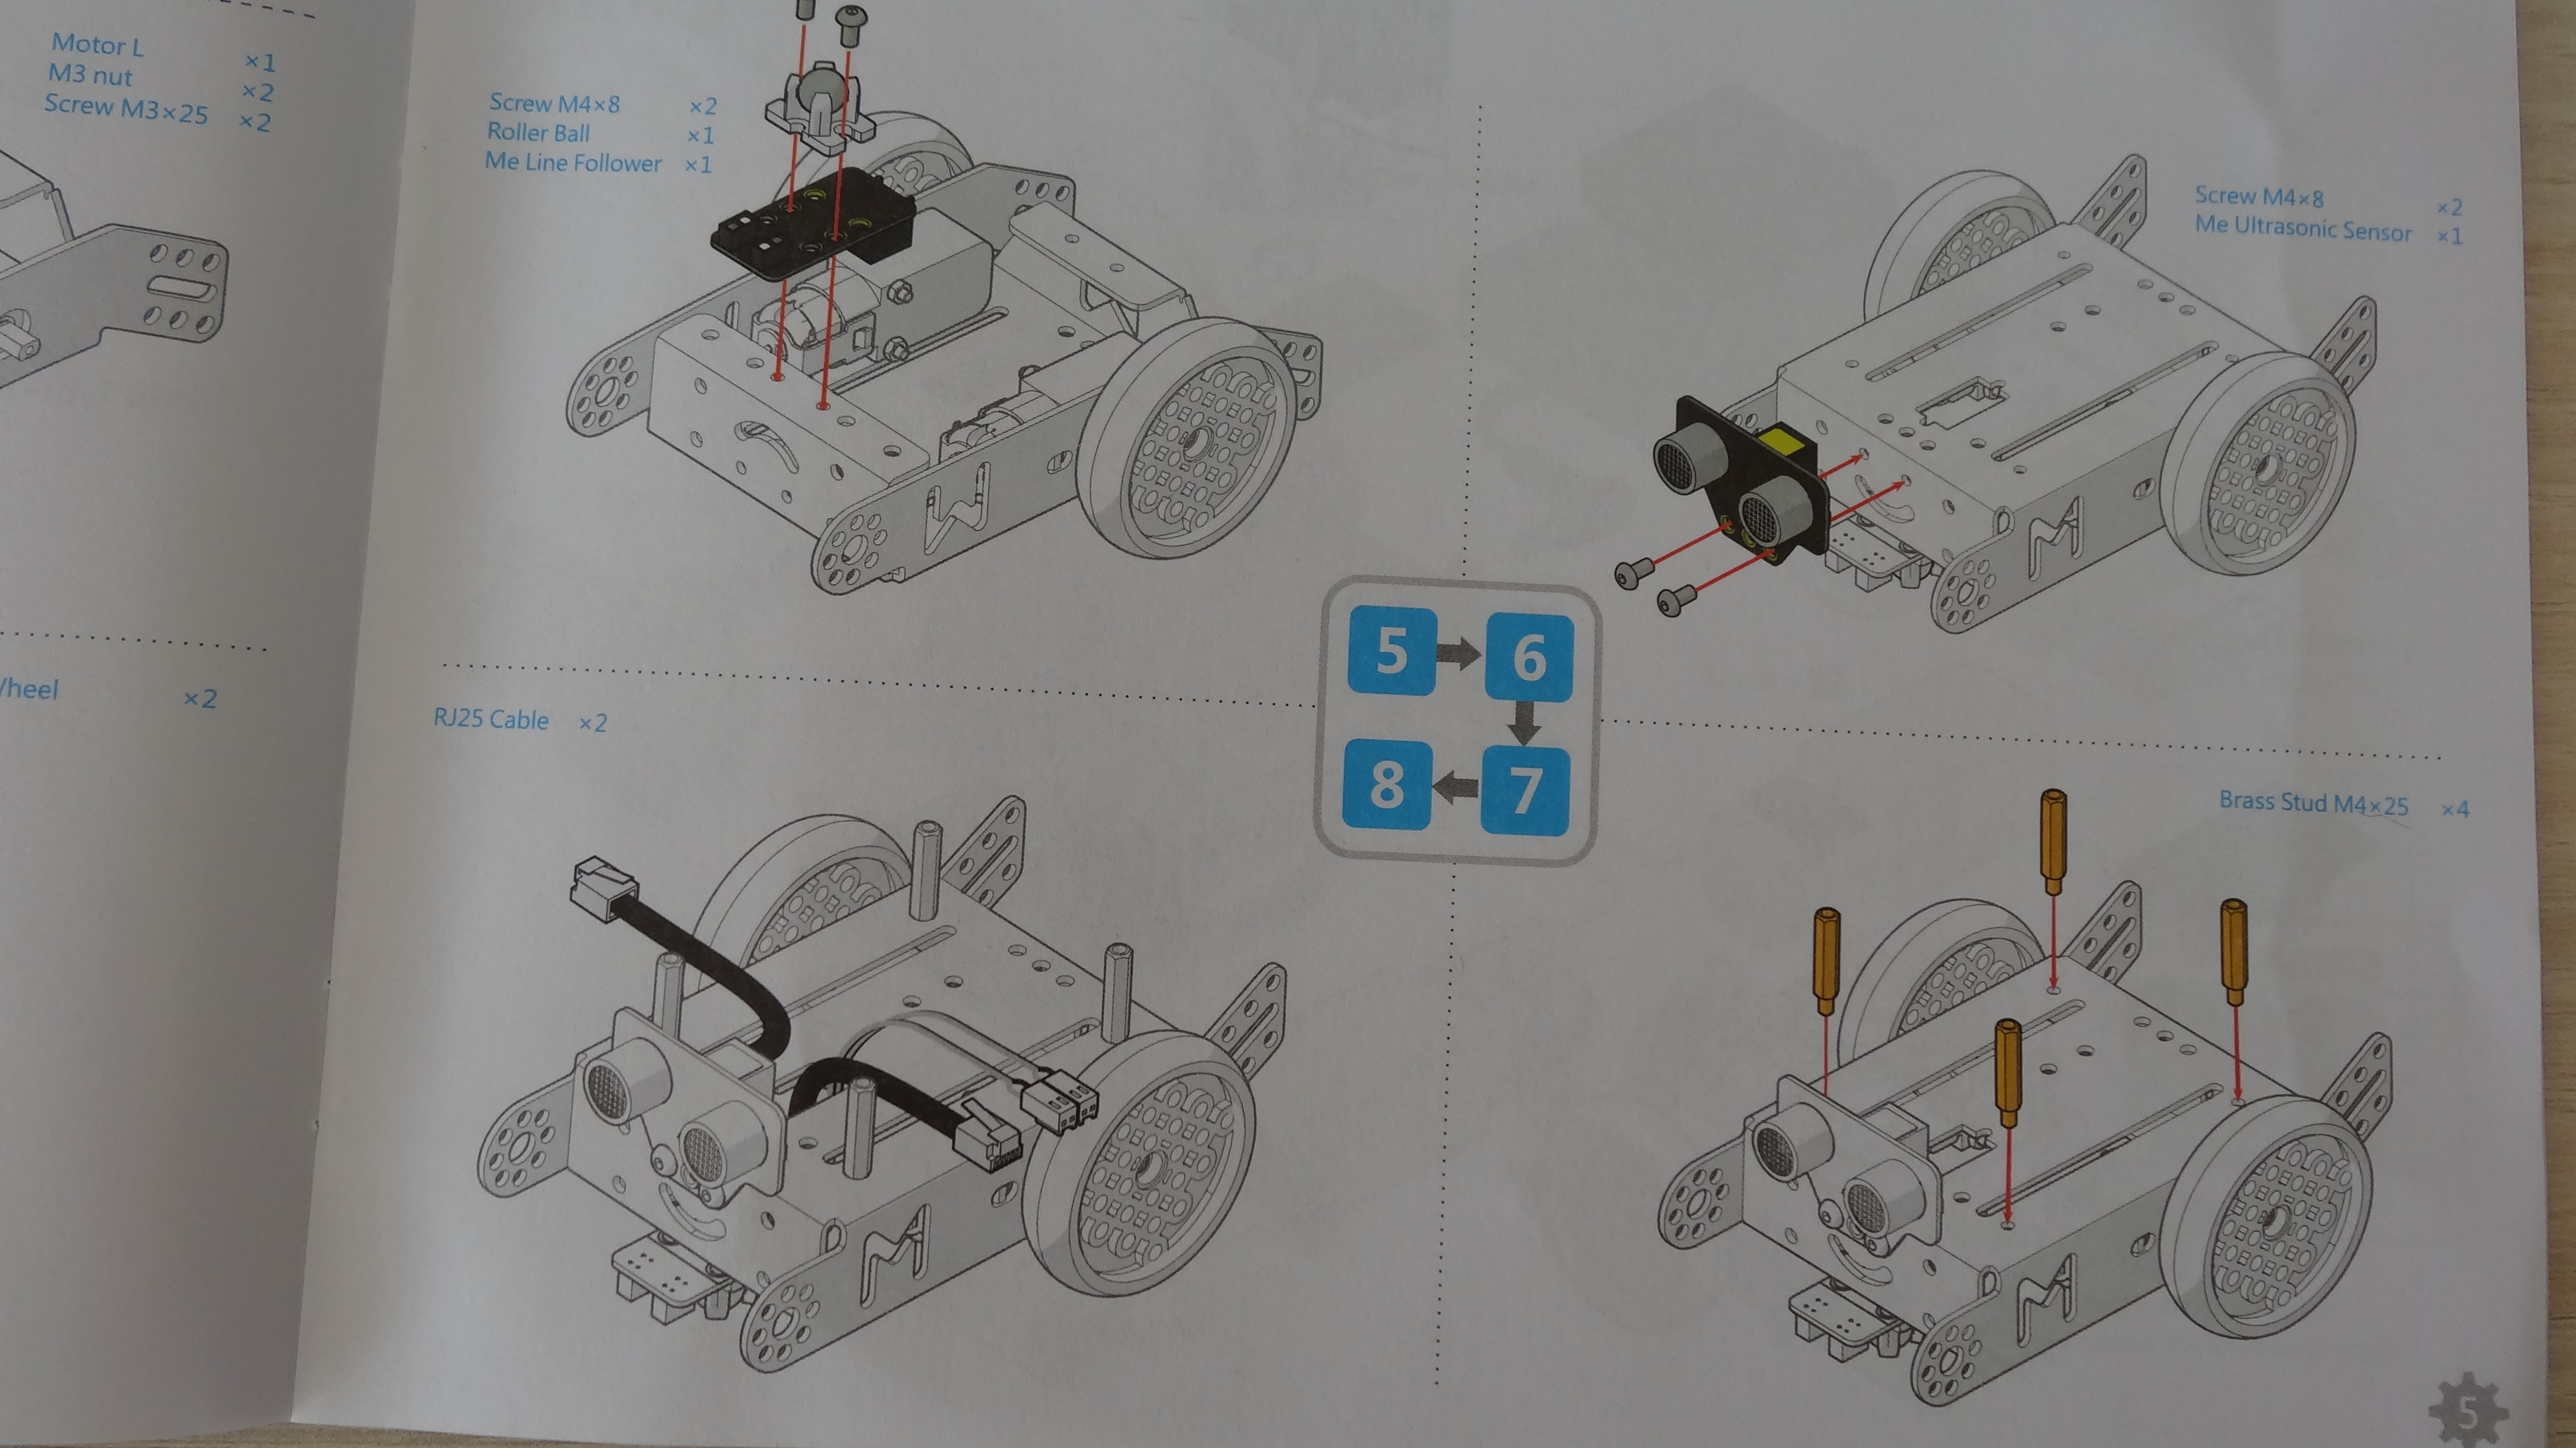 mbot-blue-un-robot-educatif-et-programmable-en-version-2-4-g-tres-interessant-legaragedupc-fr-7